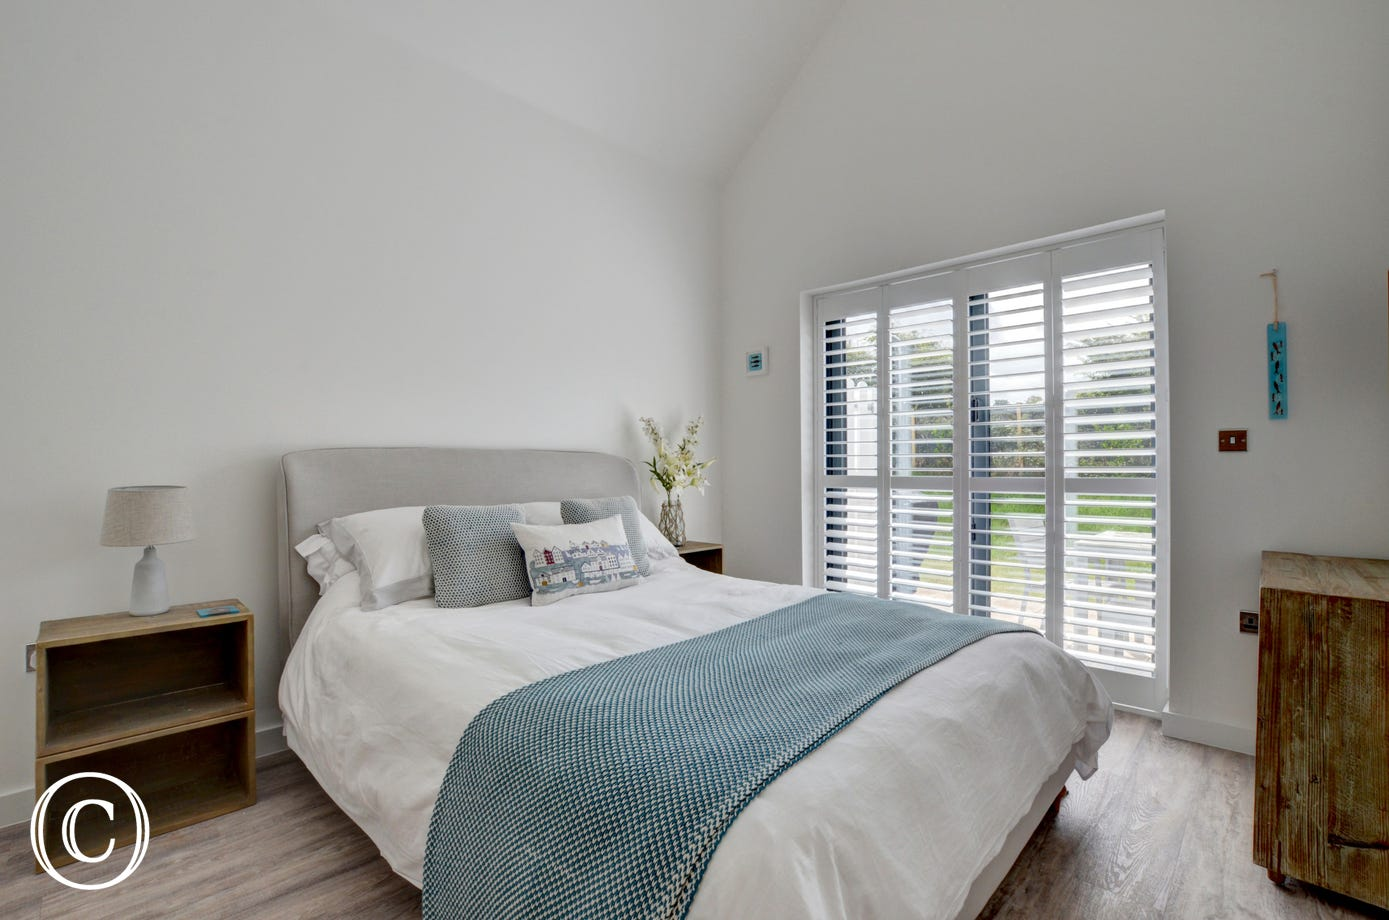 The ground floor double bedroom with ensuite is ideal if a member of your party has mobility issues